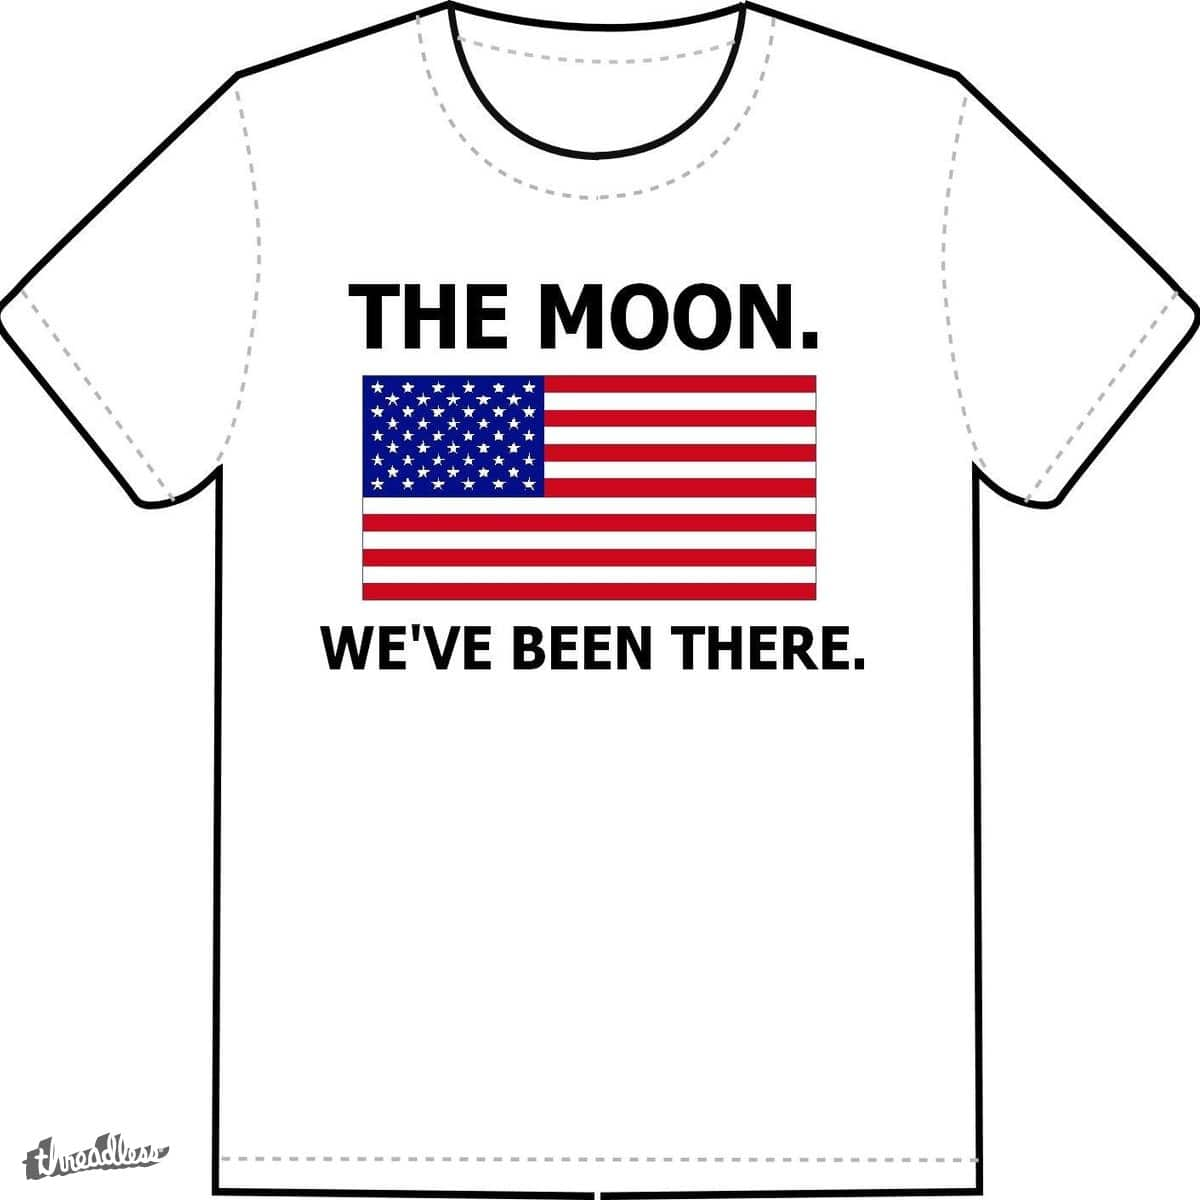 The Moon. We've Been There. by WillHaduch on Threadless